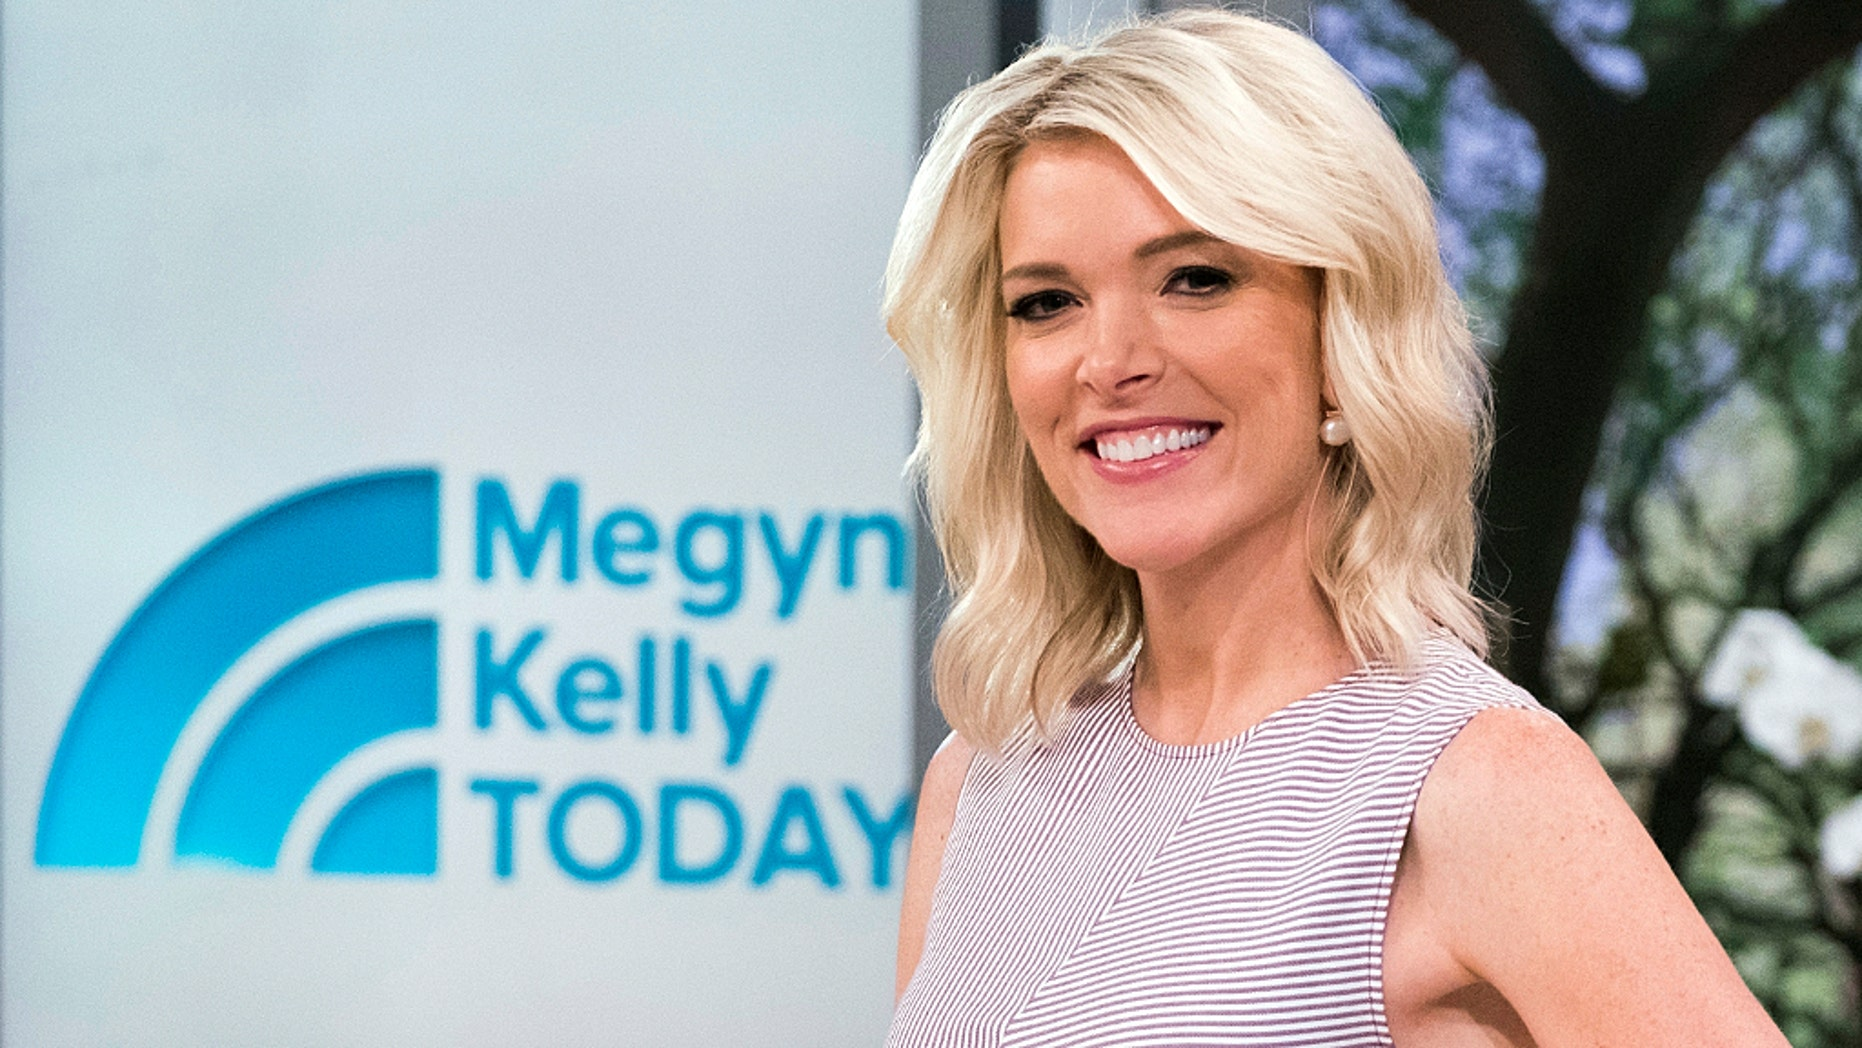 Megyn Kelly Leaves NBC with $69 Million Payout